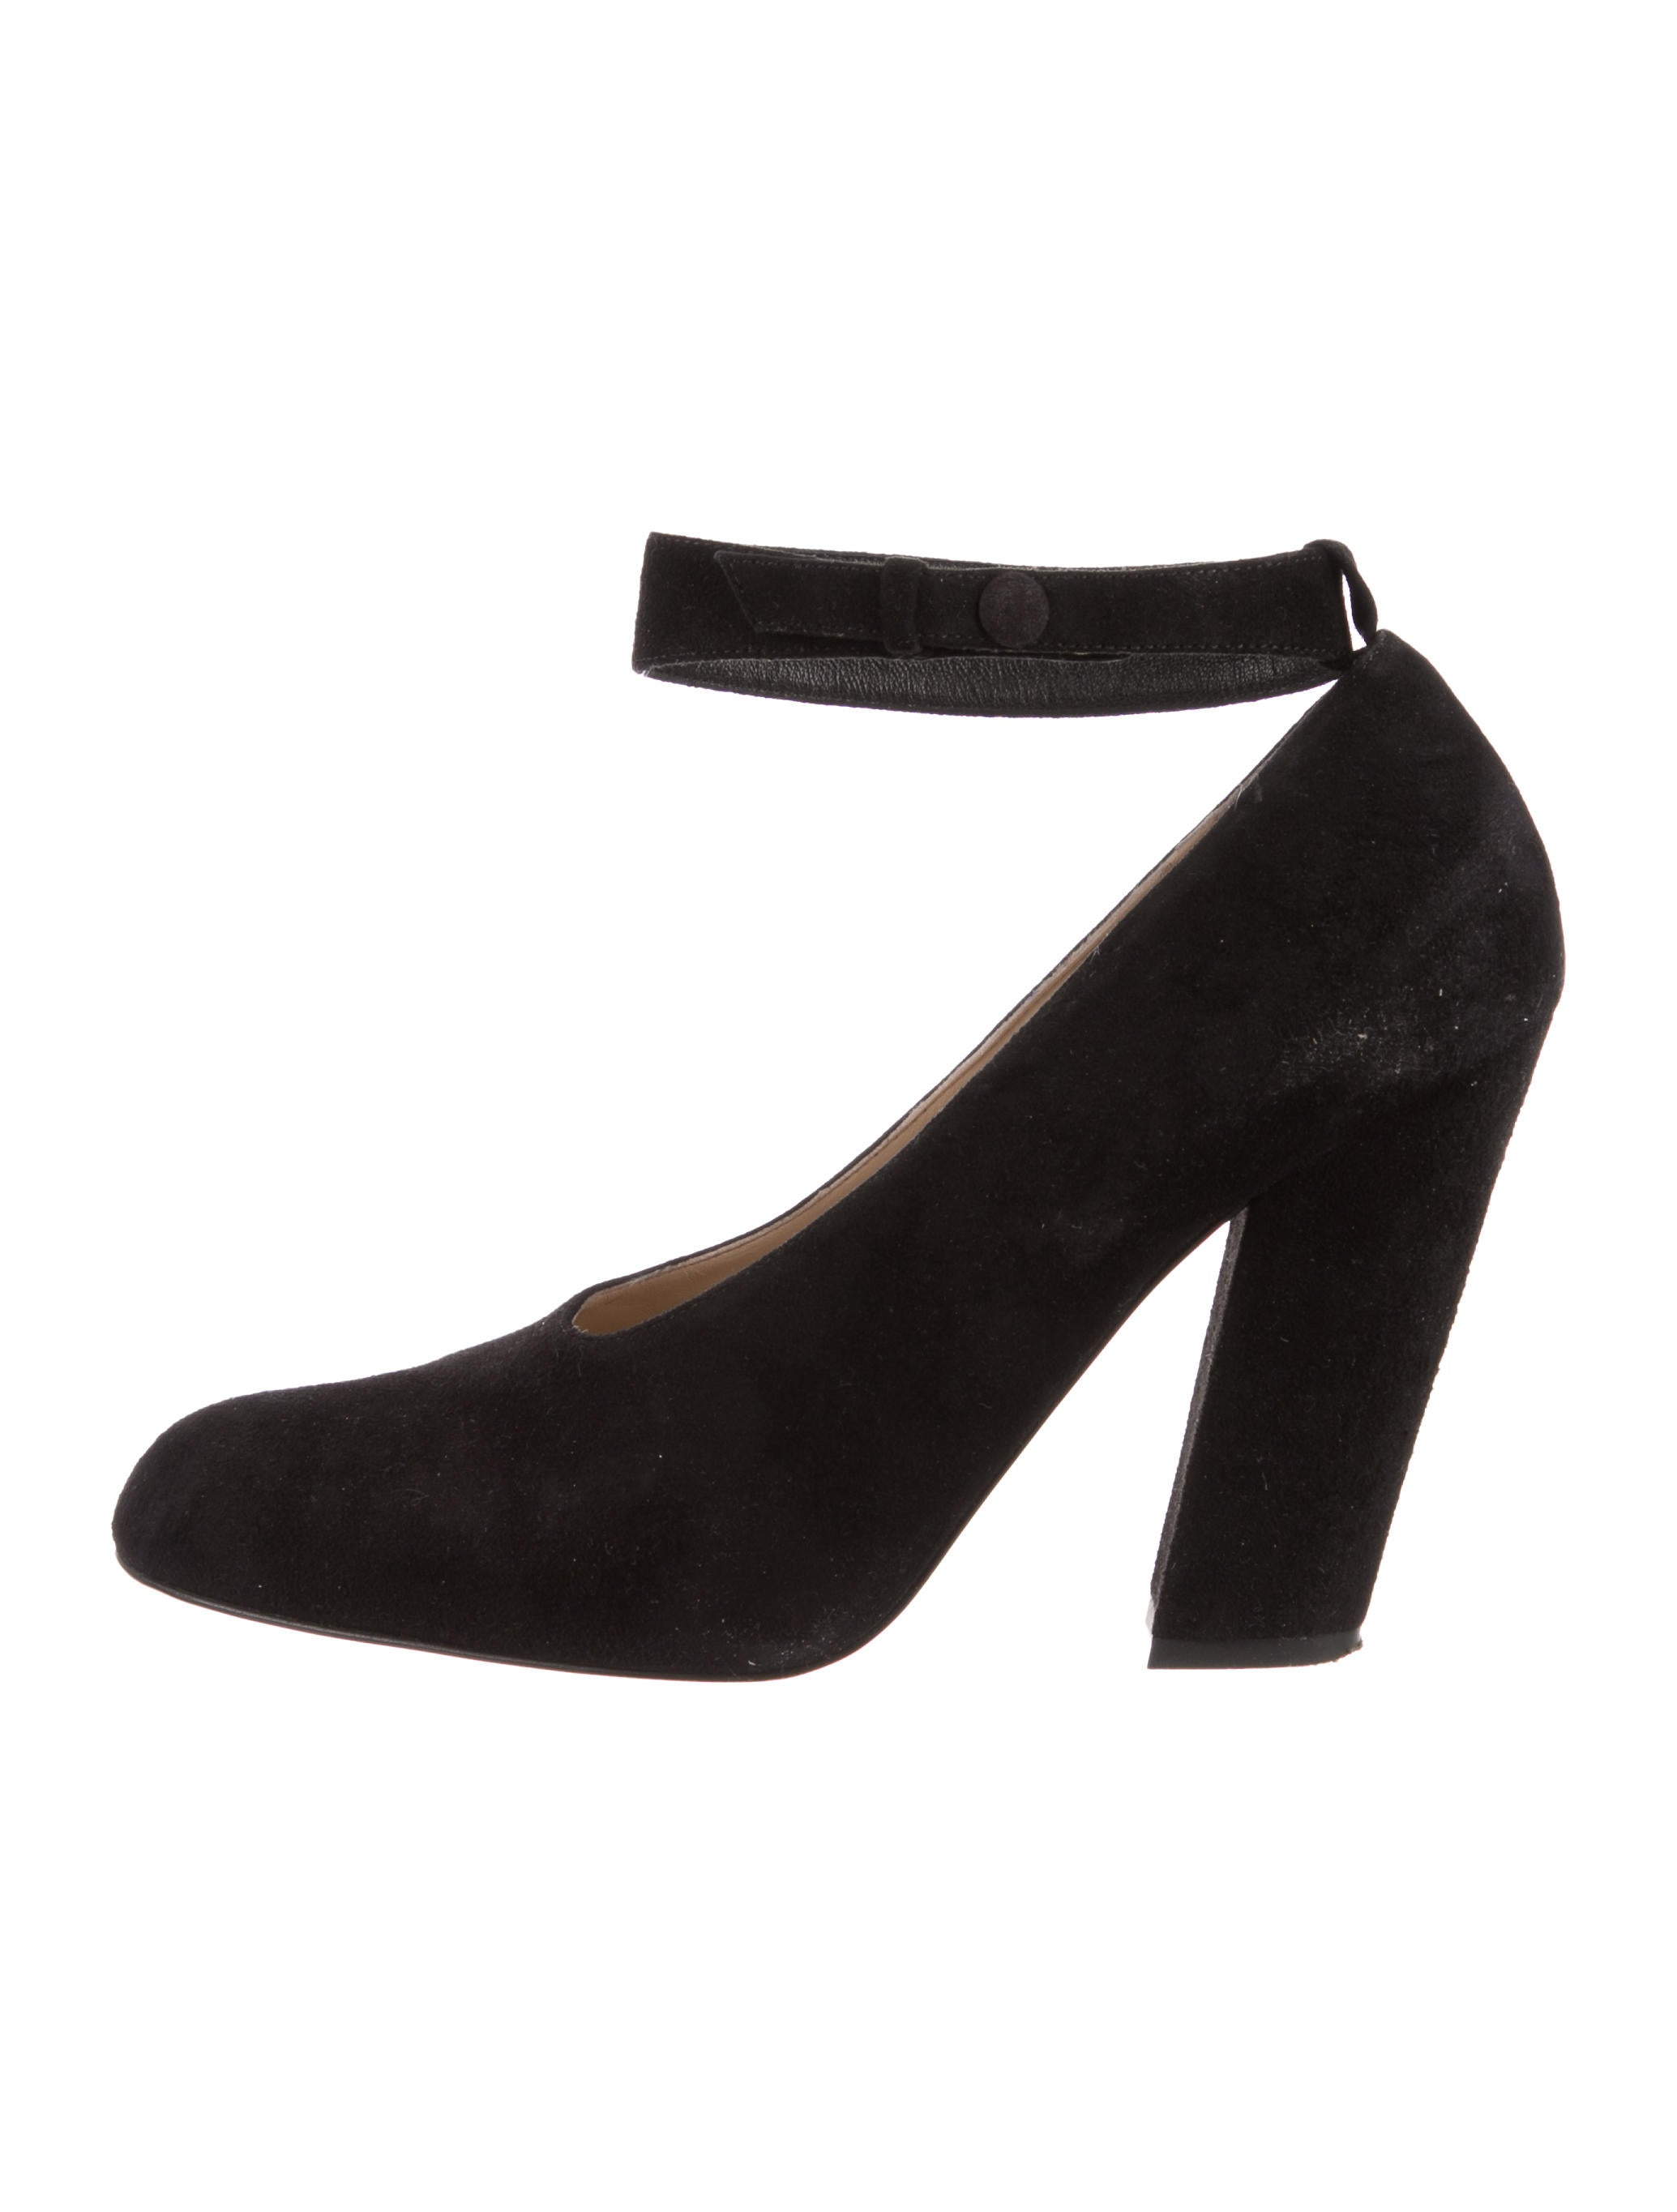 Chloé Suede Semi Pointed-Toe Pumps free shipping very cheap sLAklpXcFj